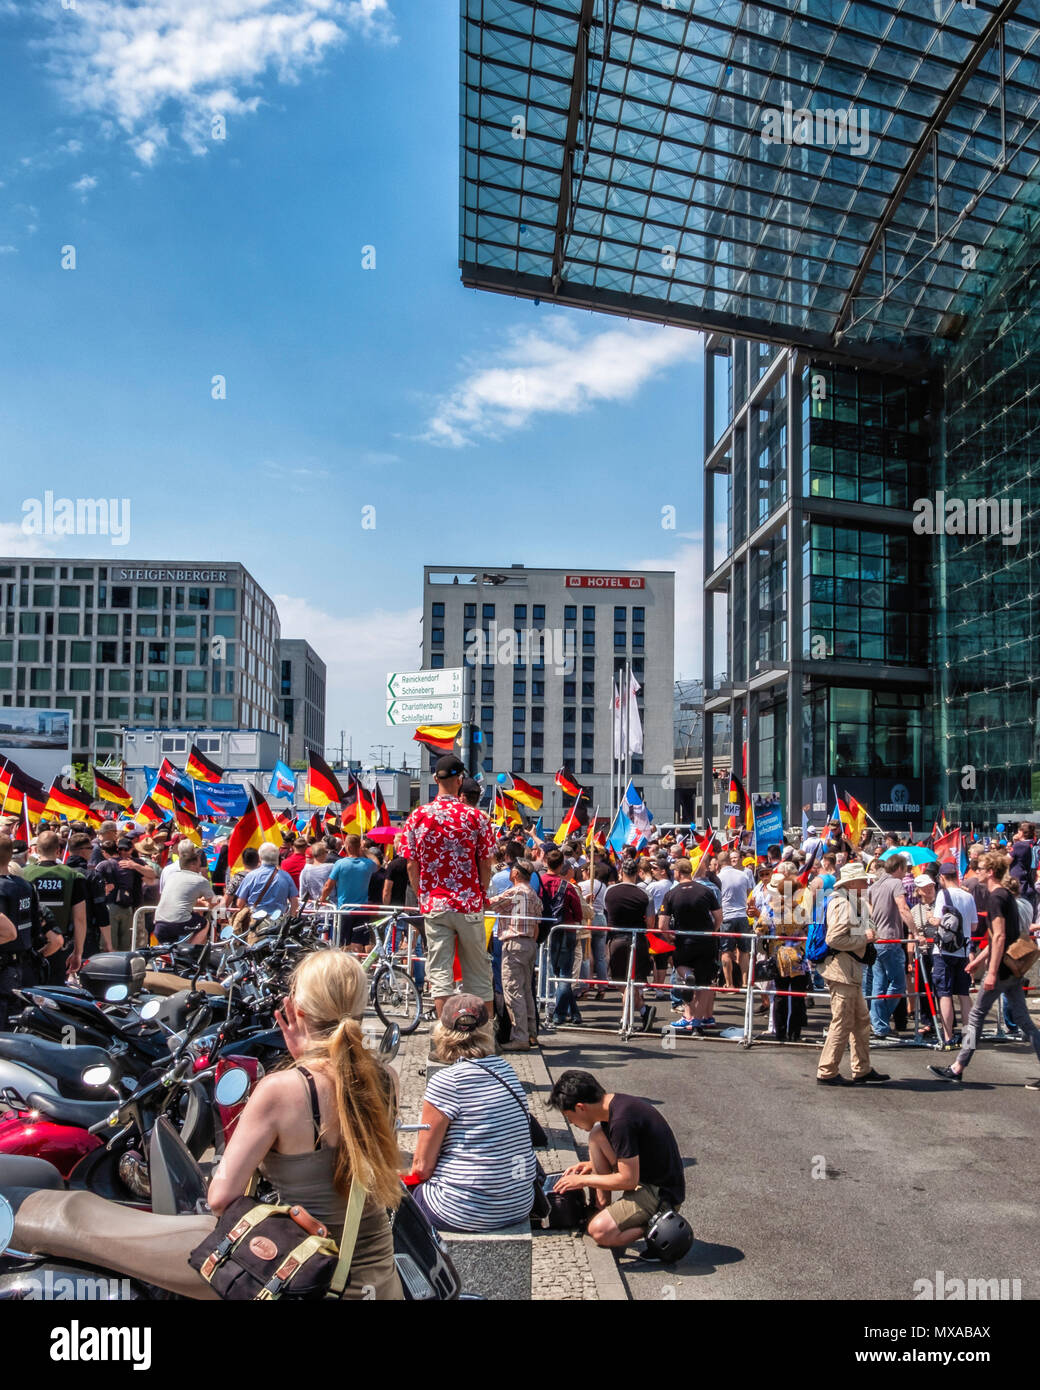 Germany,Berlin-Mitte, 27th May 2017. AFD 'Future for Germany' right wing demonstration outside Main railway station.                                   - Stock Image